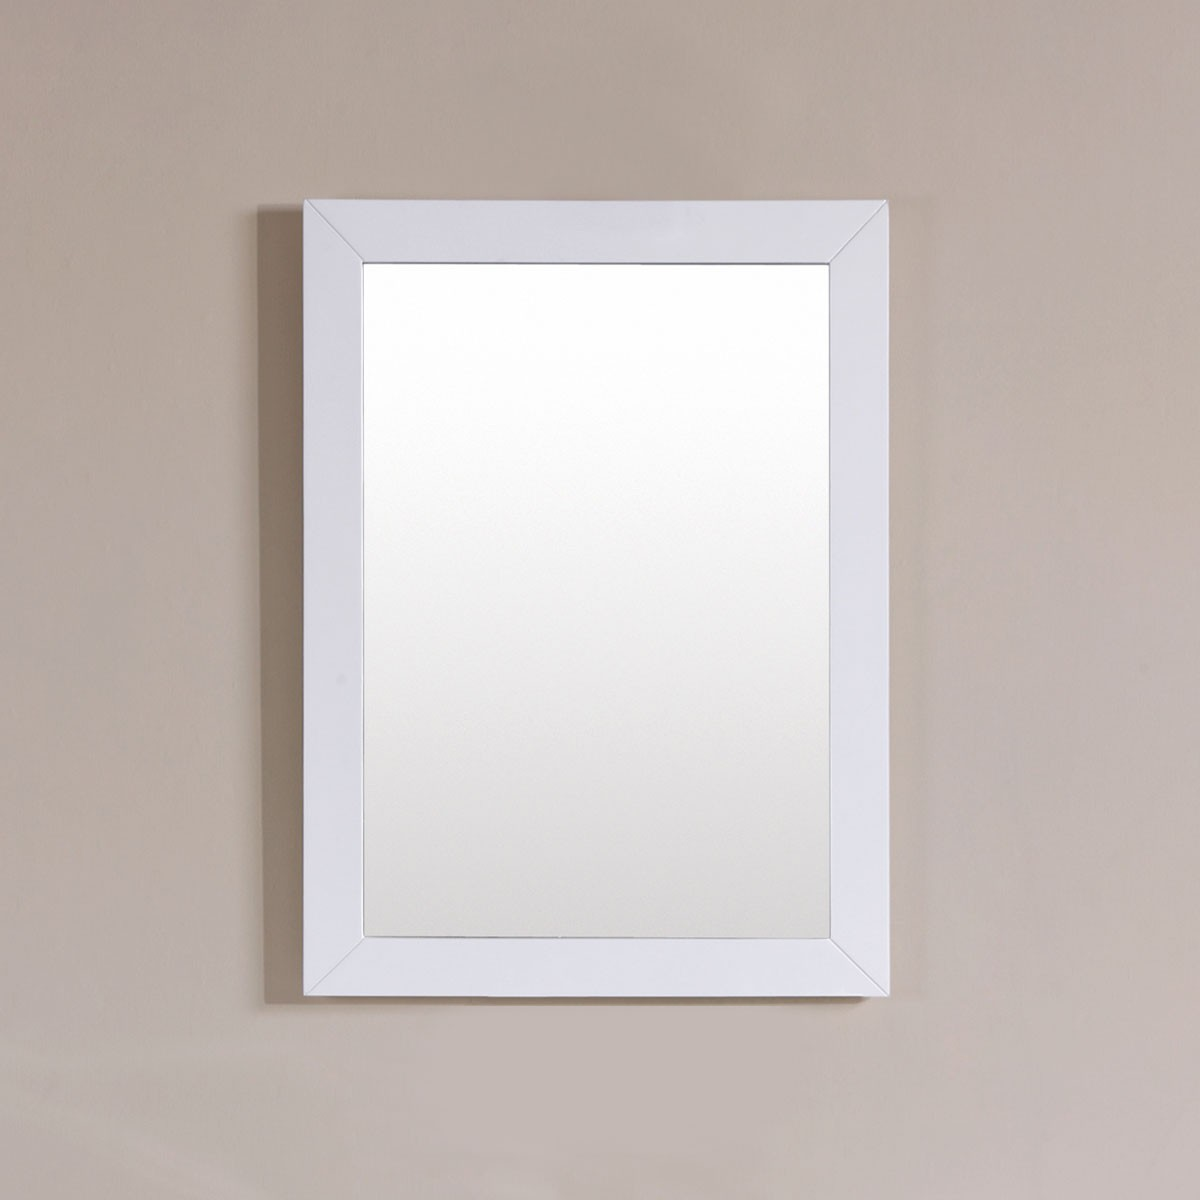 24 x 31 In. Mirror with White Frame (DK-T9312-24WM)